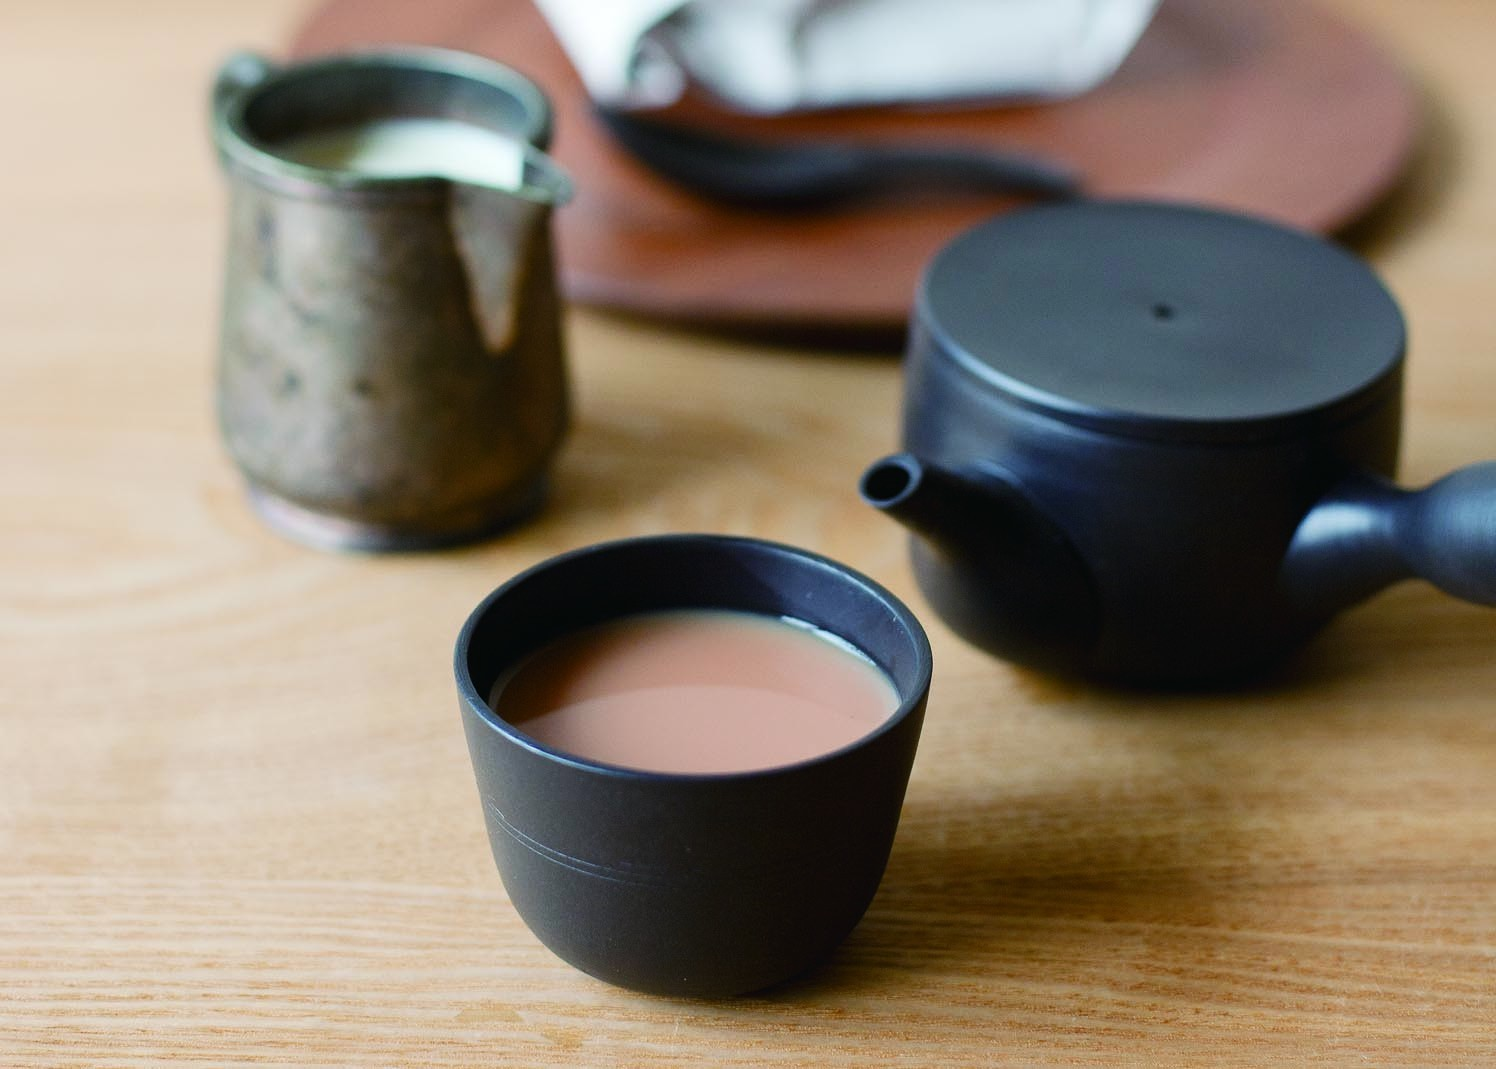 chanoki - tableware